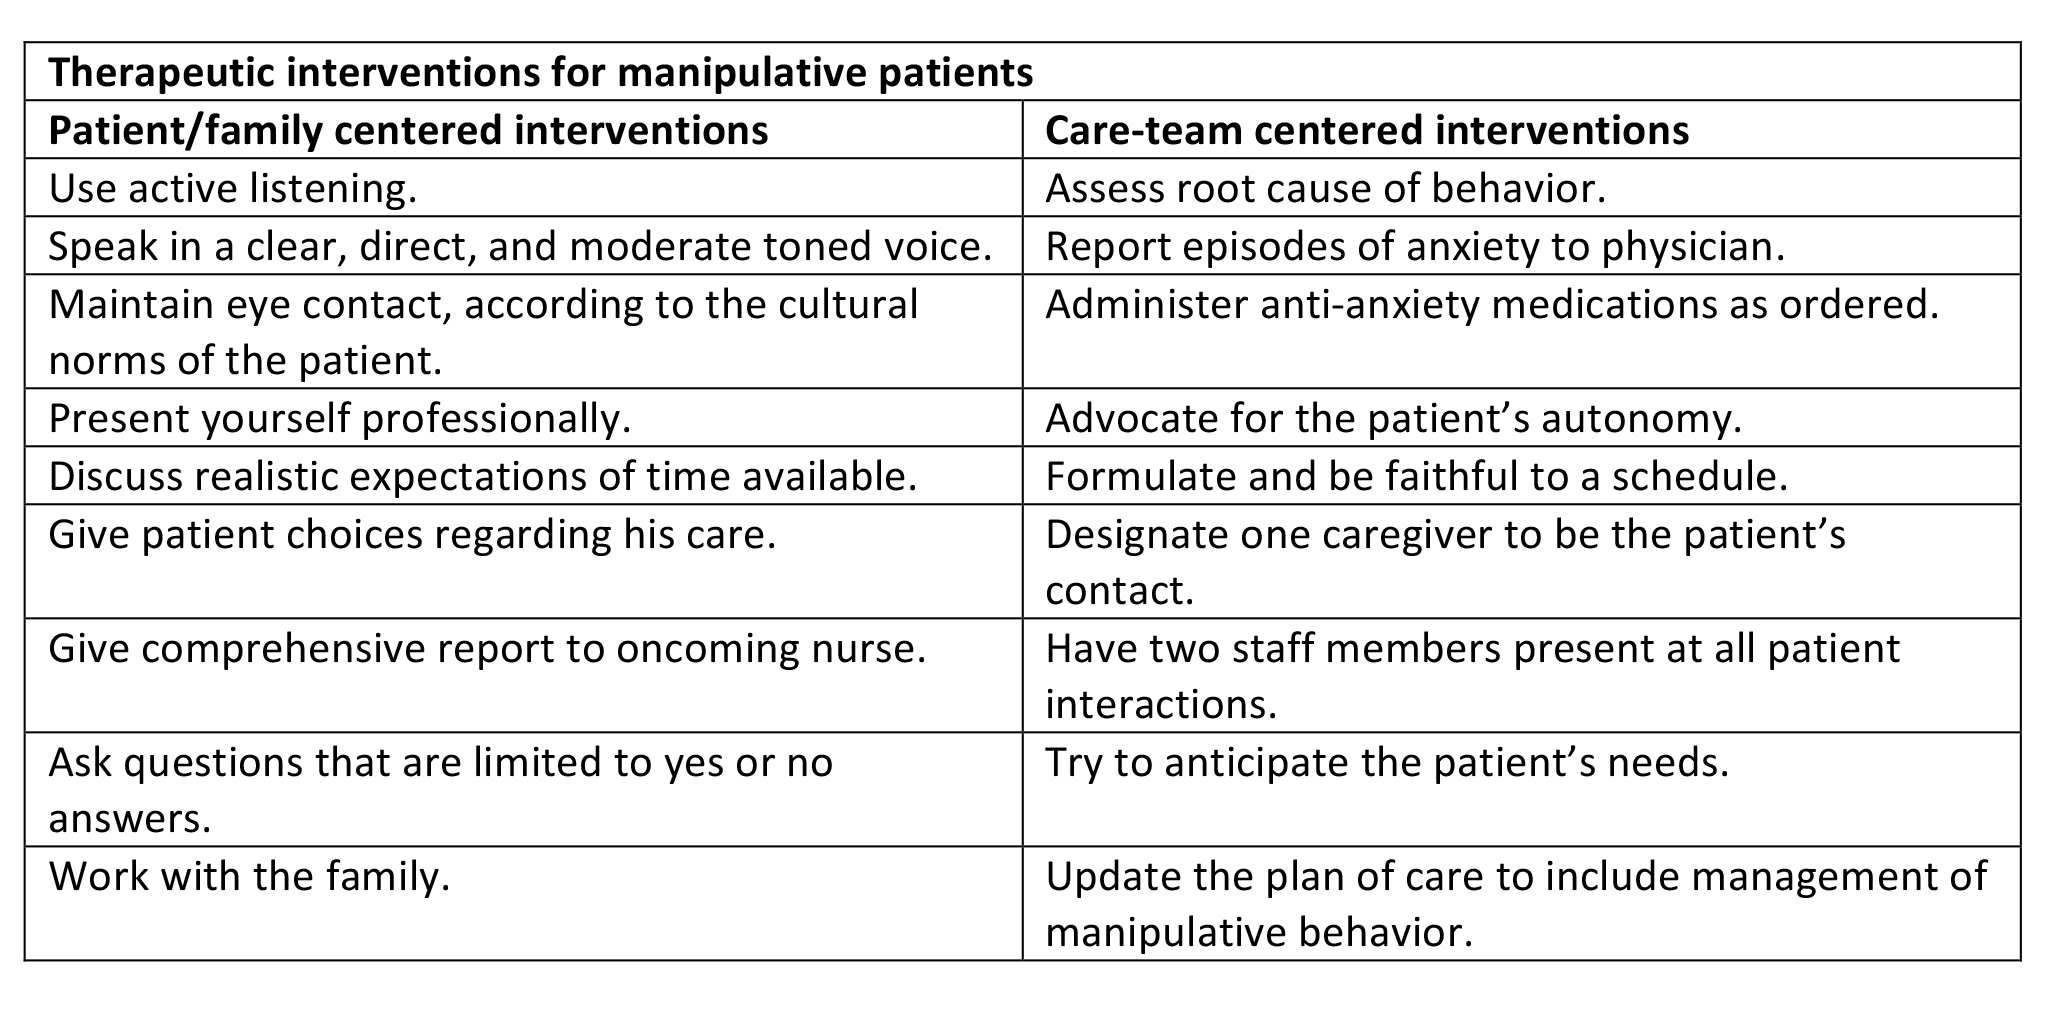 How to manage manipulative behavior in geriatric patients - American